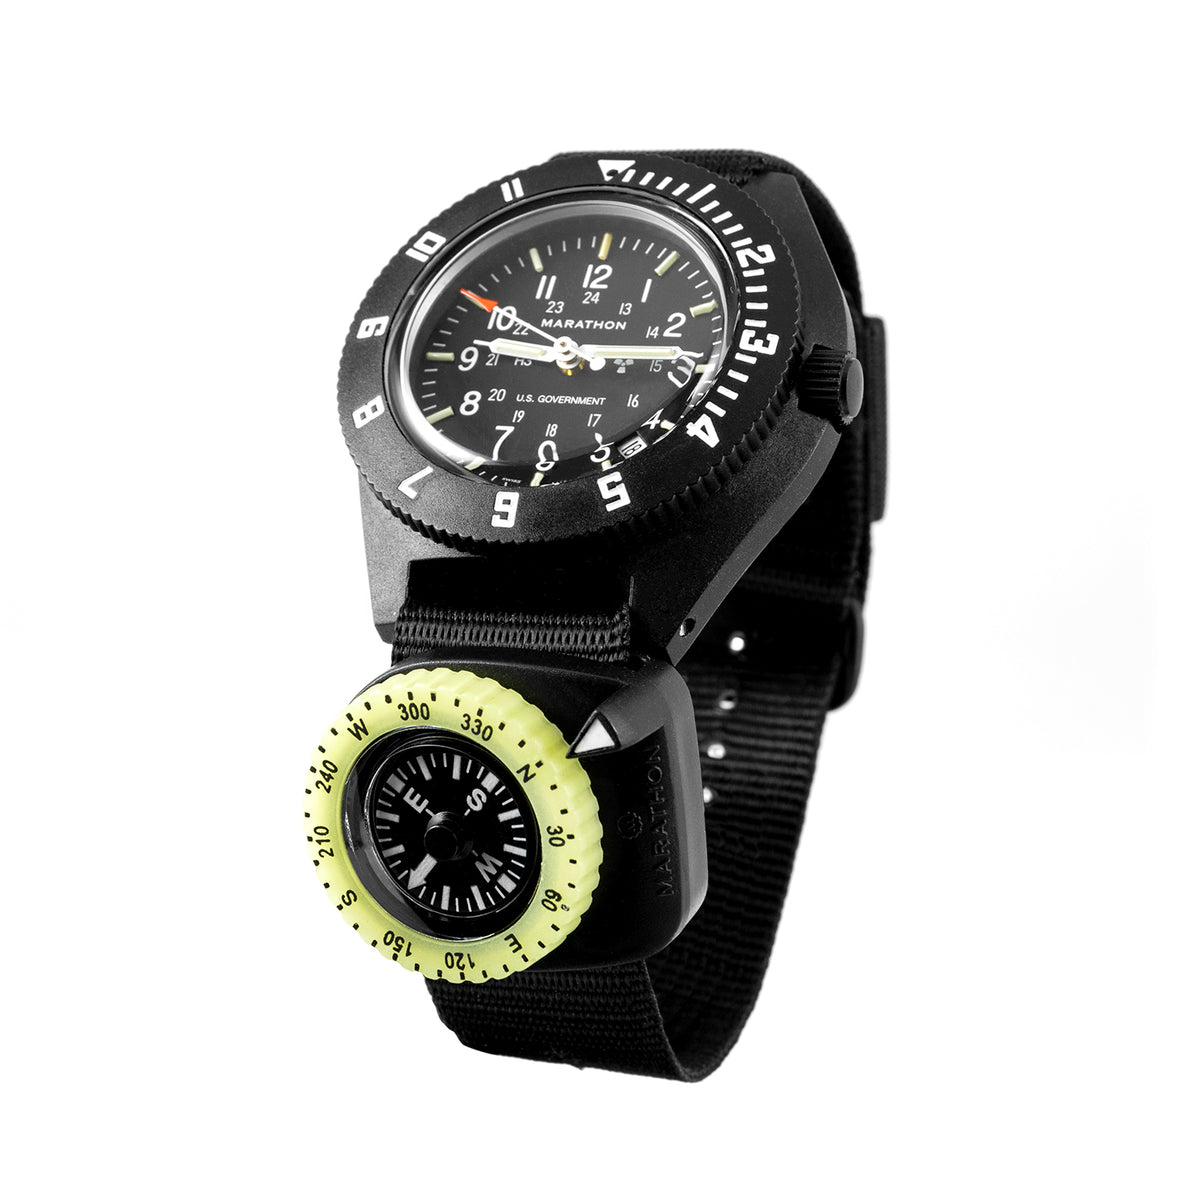 Clip on wrist compass with glow in the dark bezel marathonwatch for Watches with compass